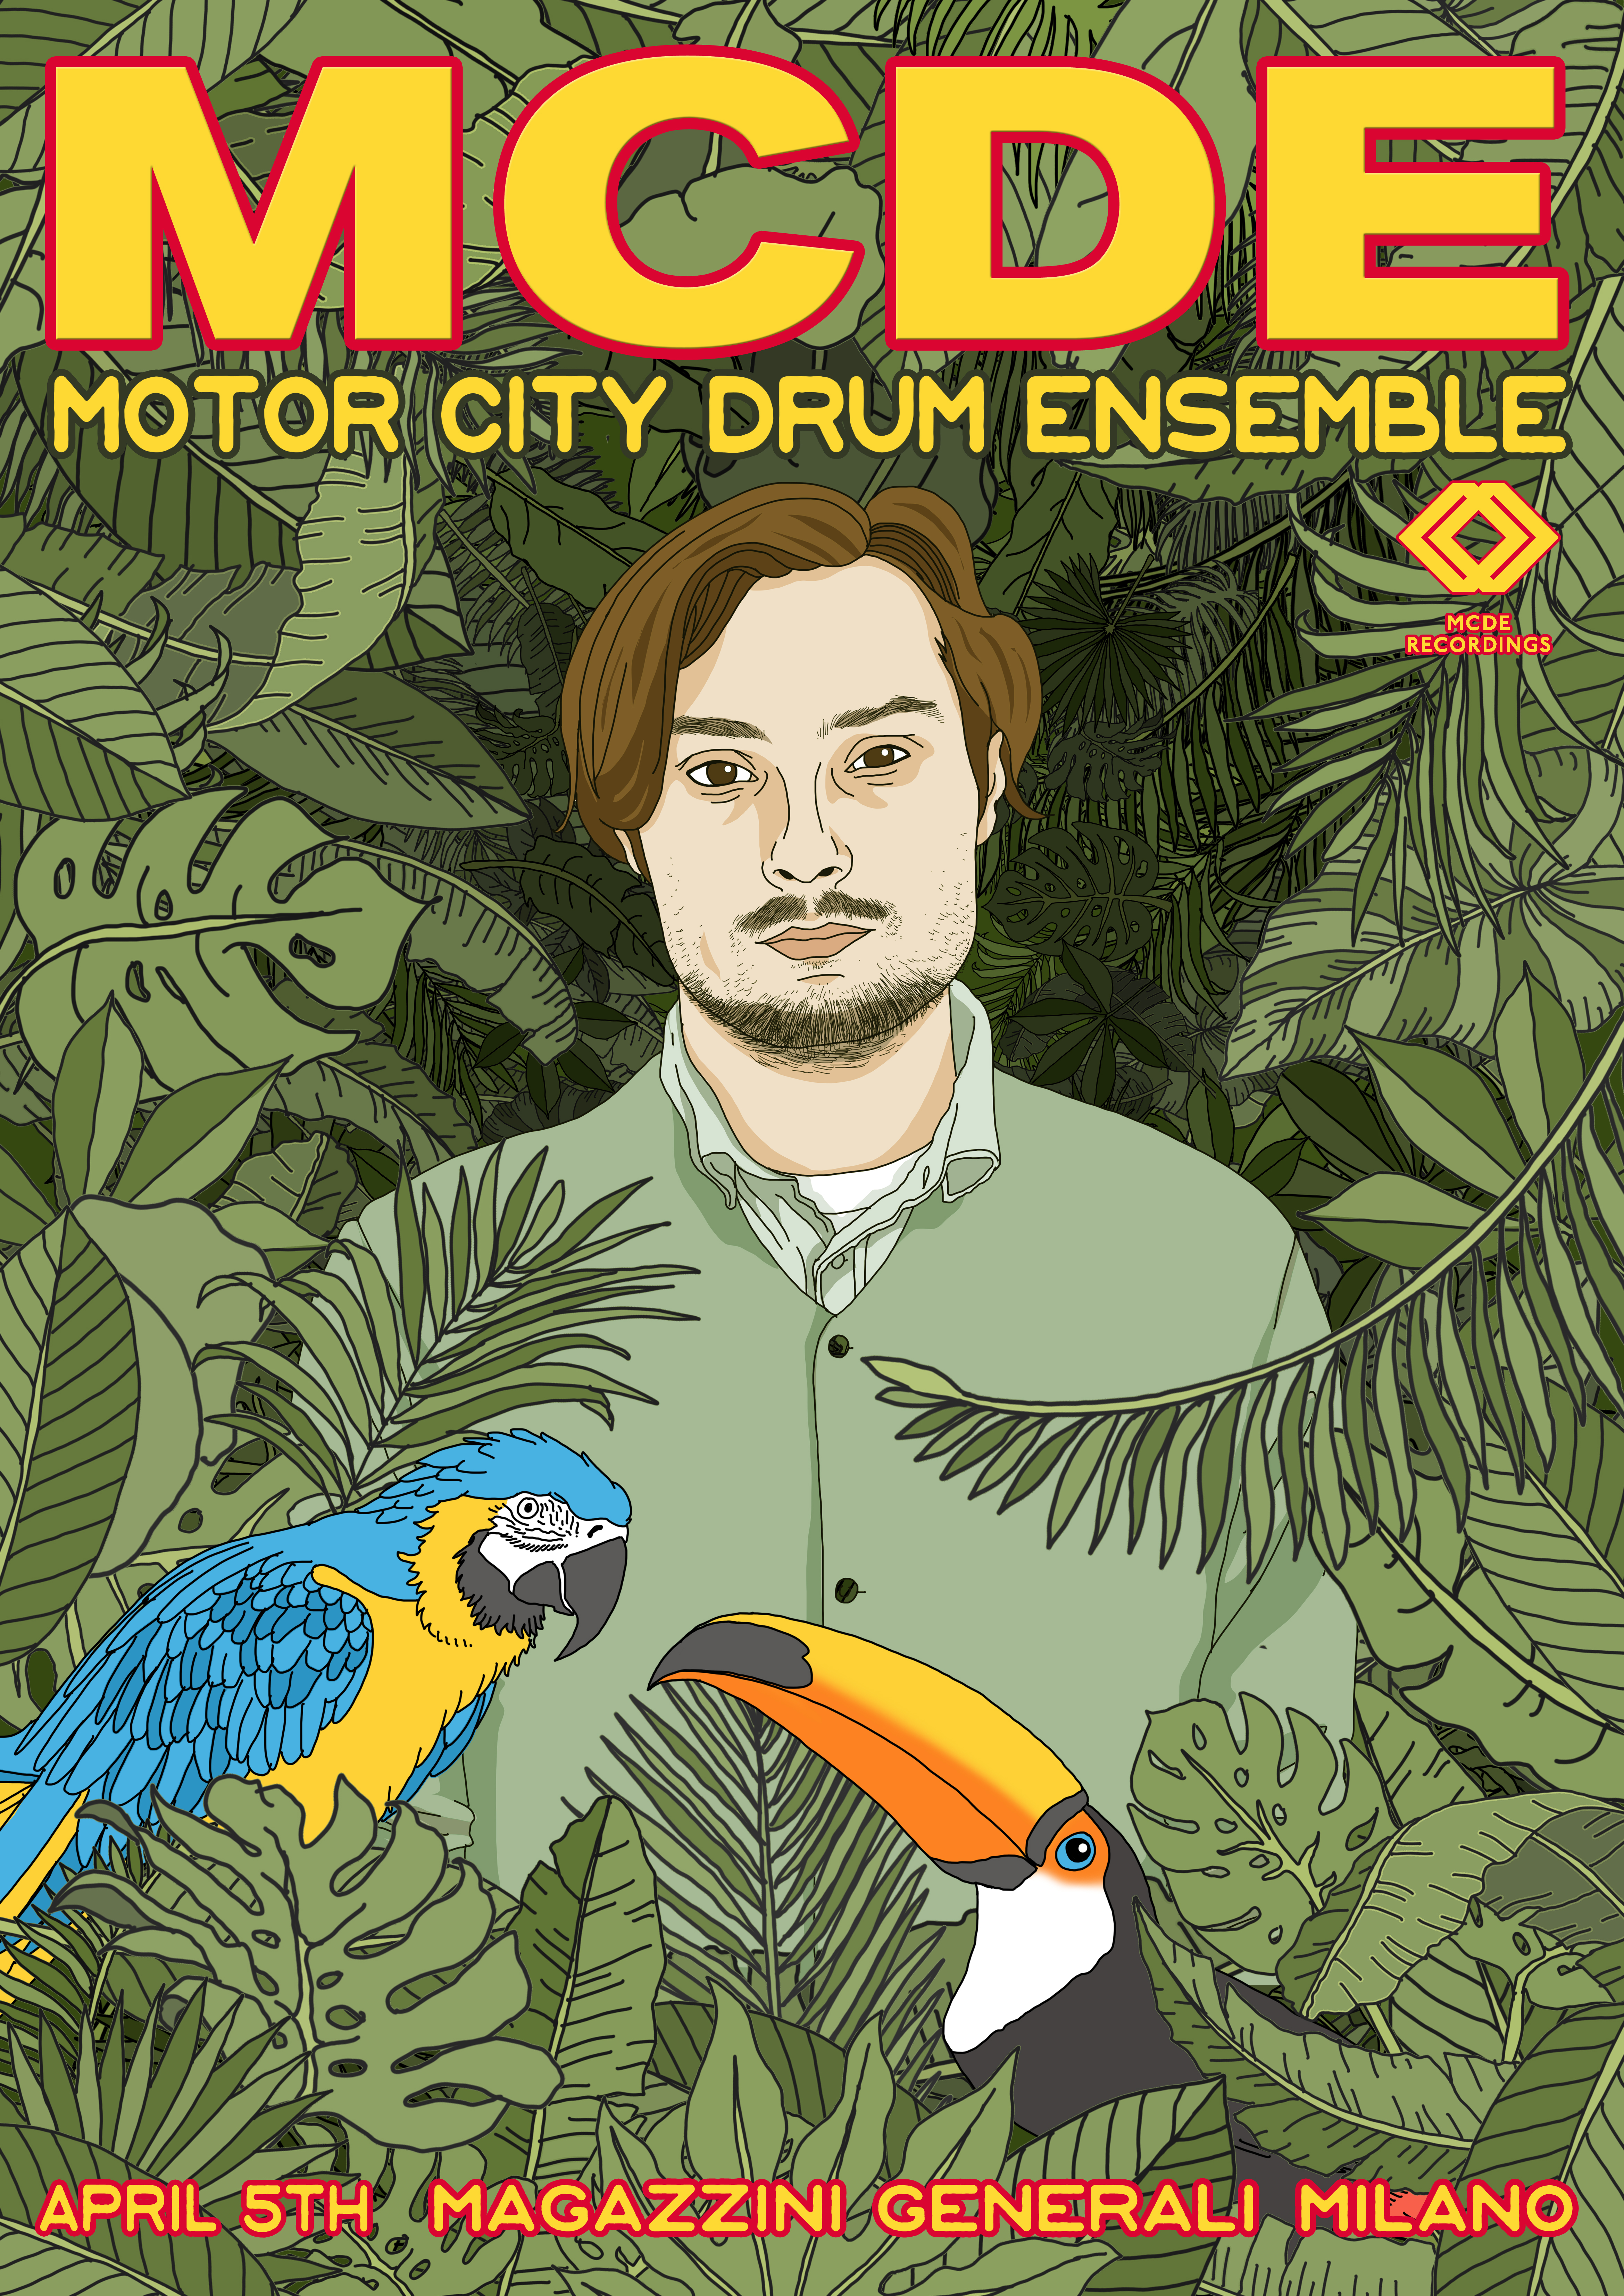 Motor City Drum Ensemble Arriva a Milano magazzini generali evento